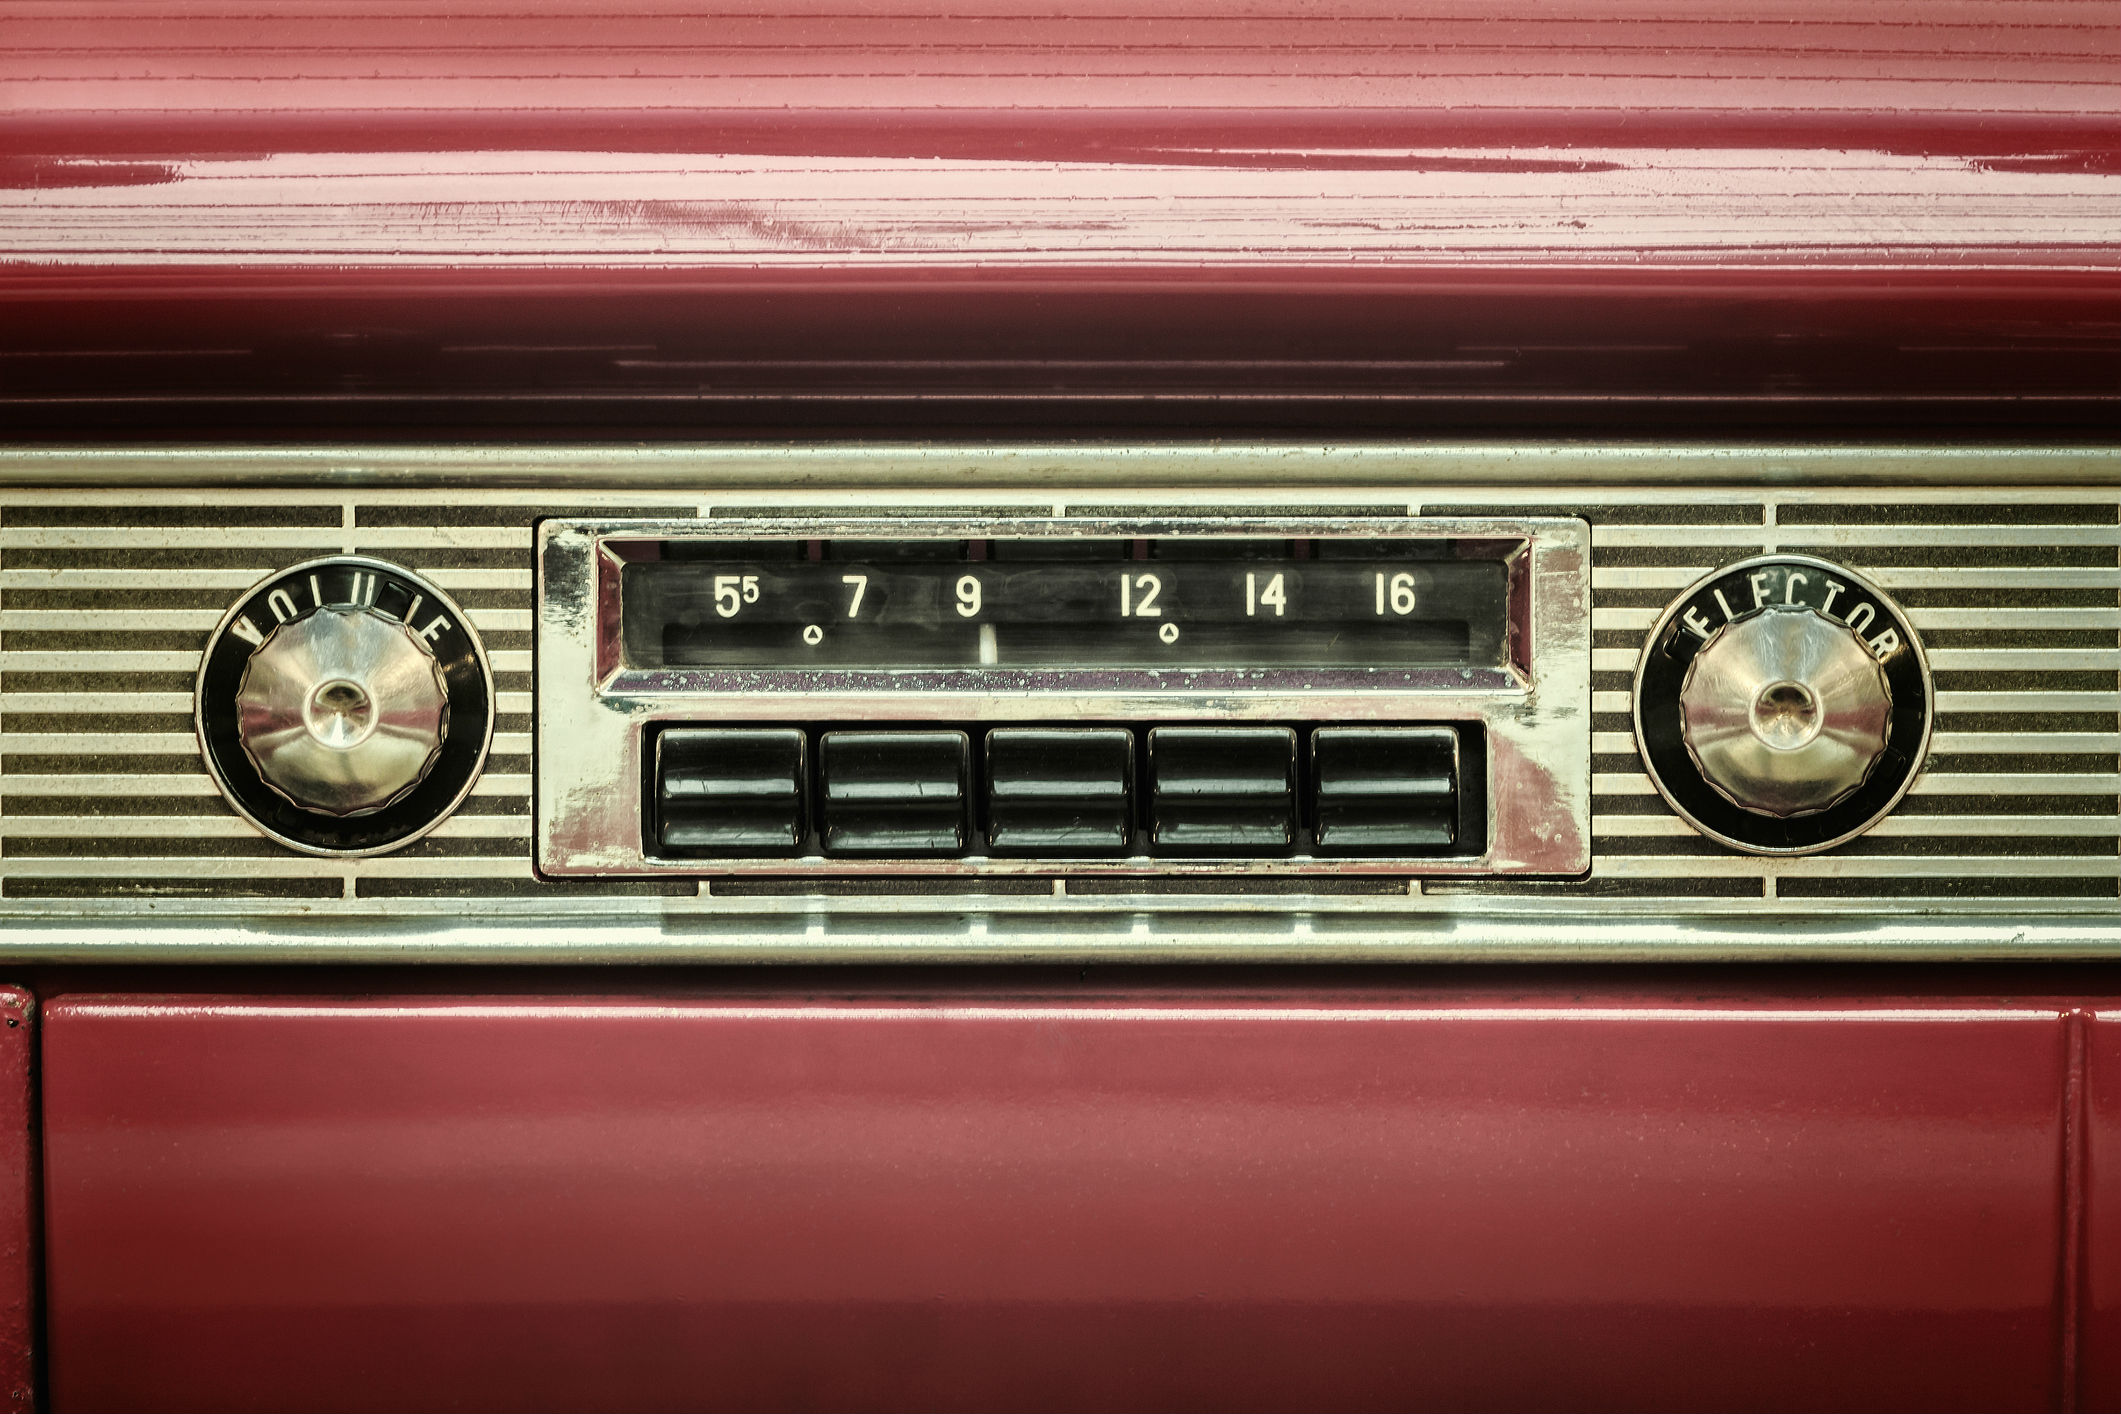 Tuned to perfection: how to upgrade an old car stereo to stream music